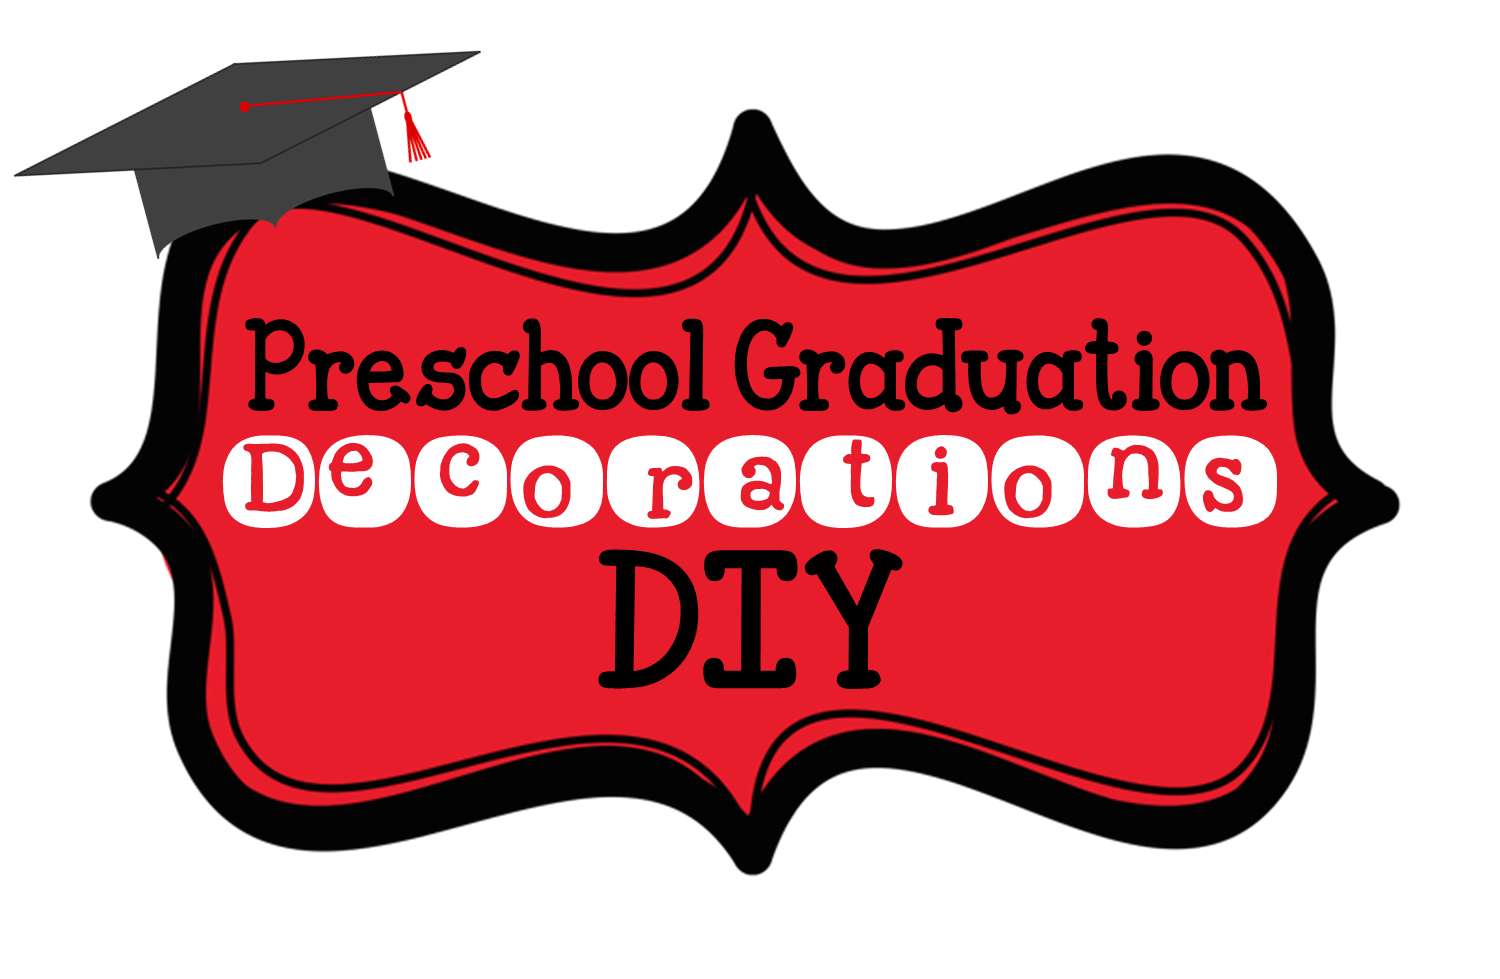 Ive Learned That When It Comes To Decorations For Preschool Graduation Less Is More This A Problem Me Because I LOVE Decorate But Ultimately